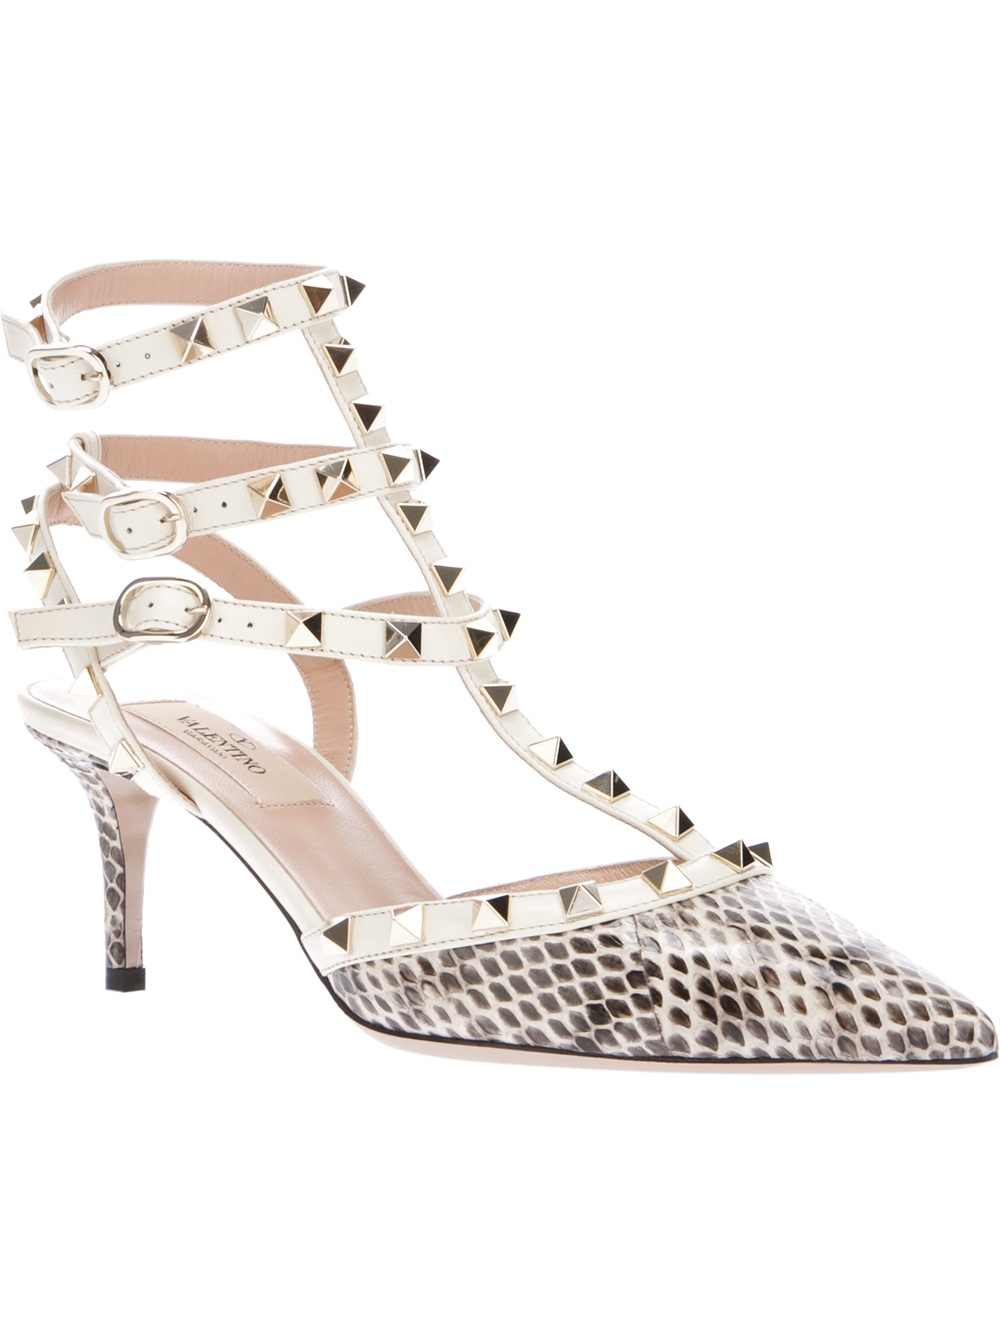 Valentino Python Print Studded Strappy Pumps in White | Lyst